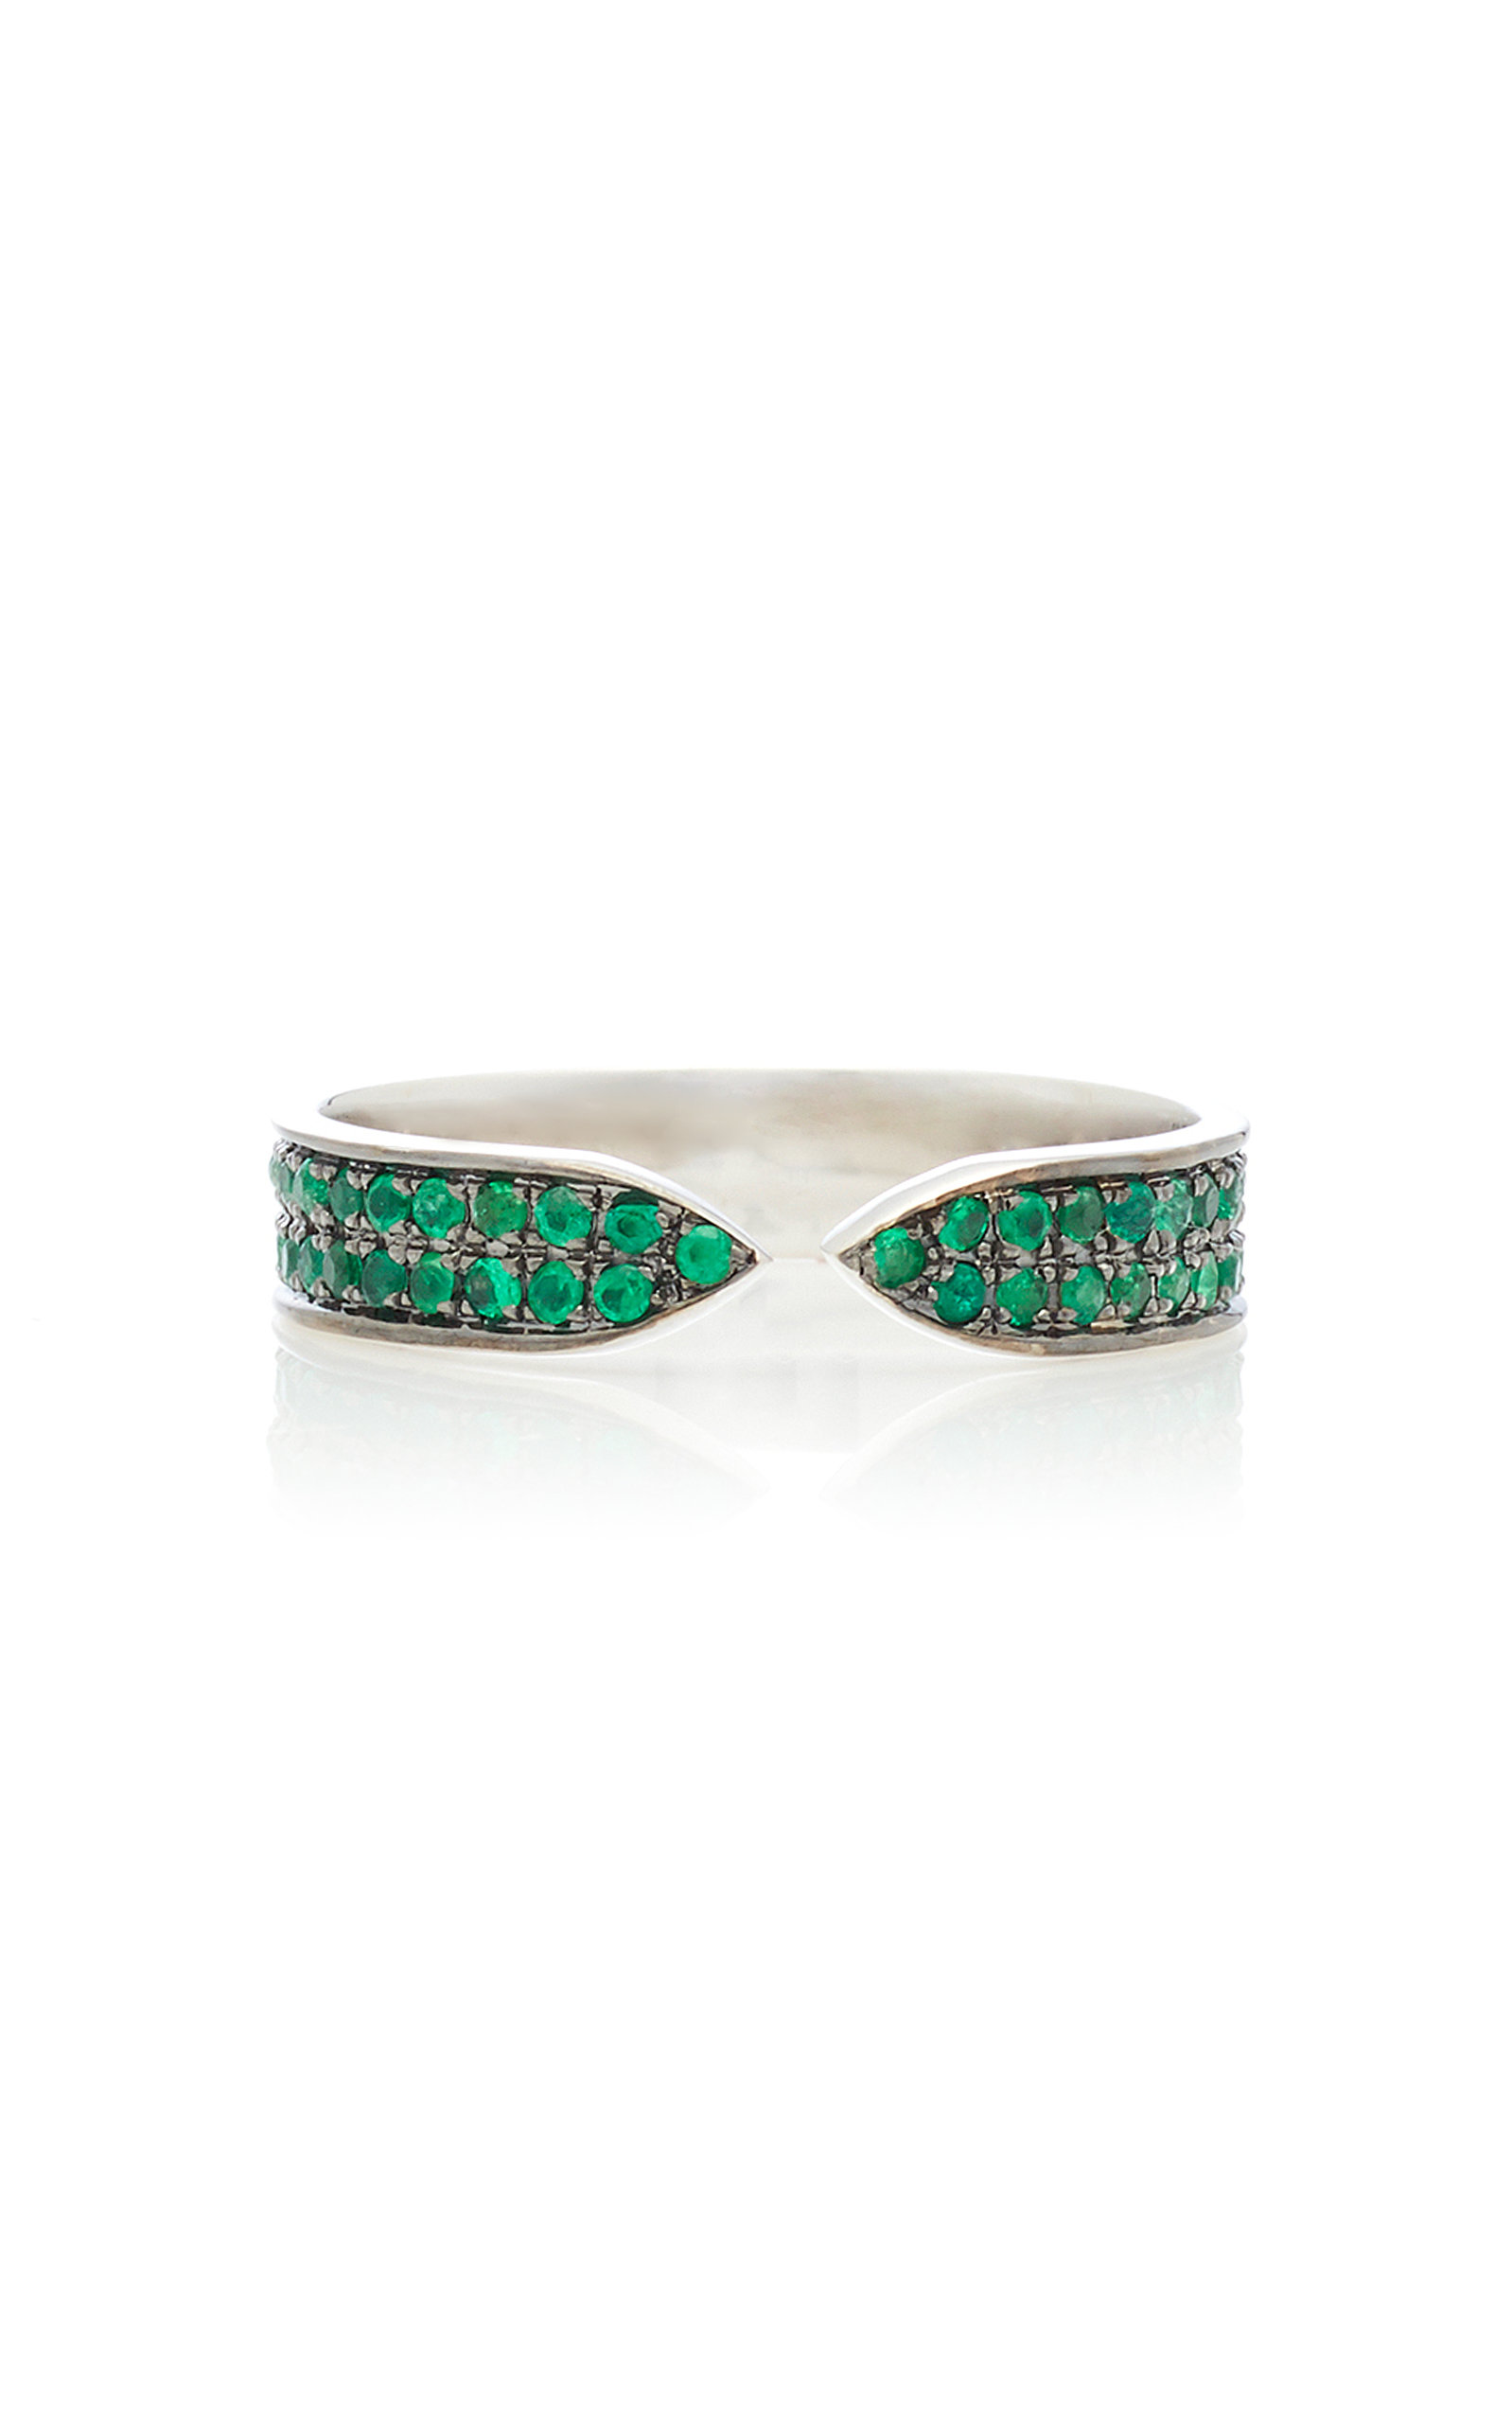 RALPH MASRI 18Kt White Gold And Emerald Ring in Green